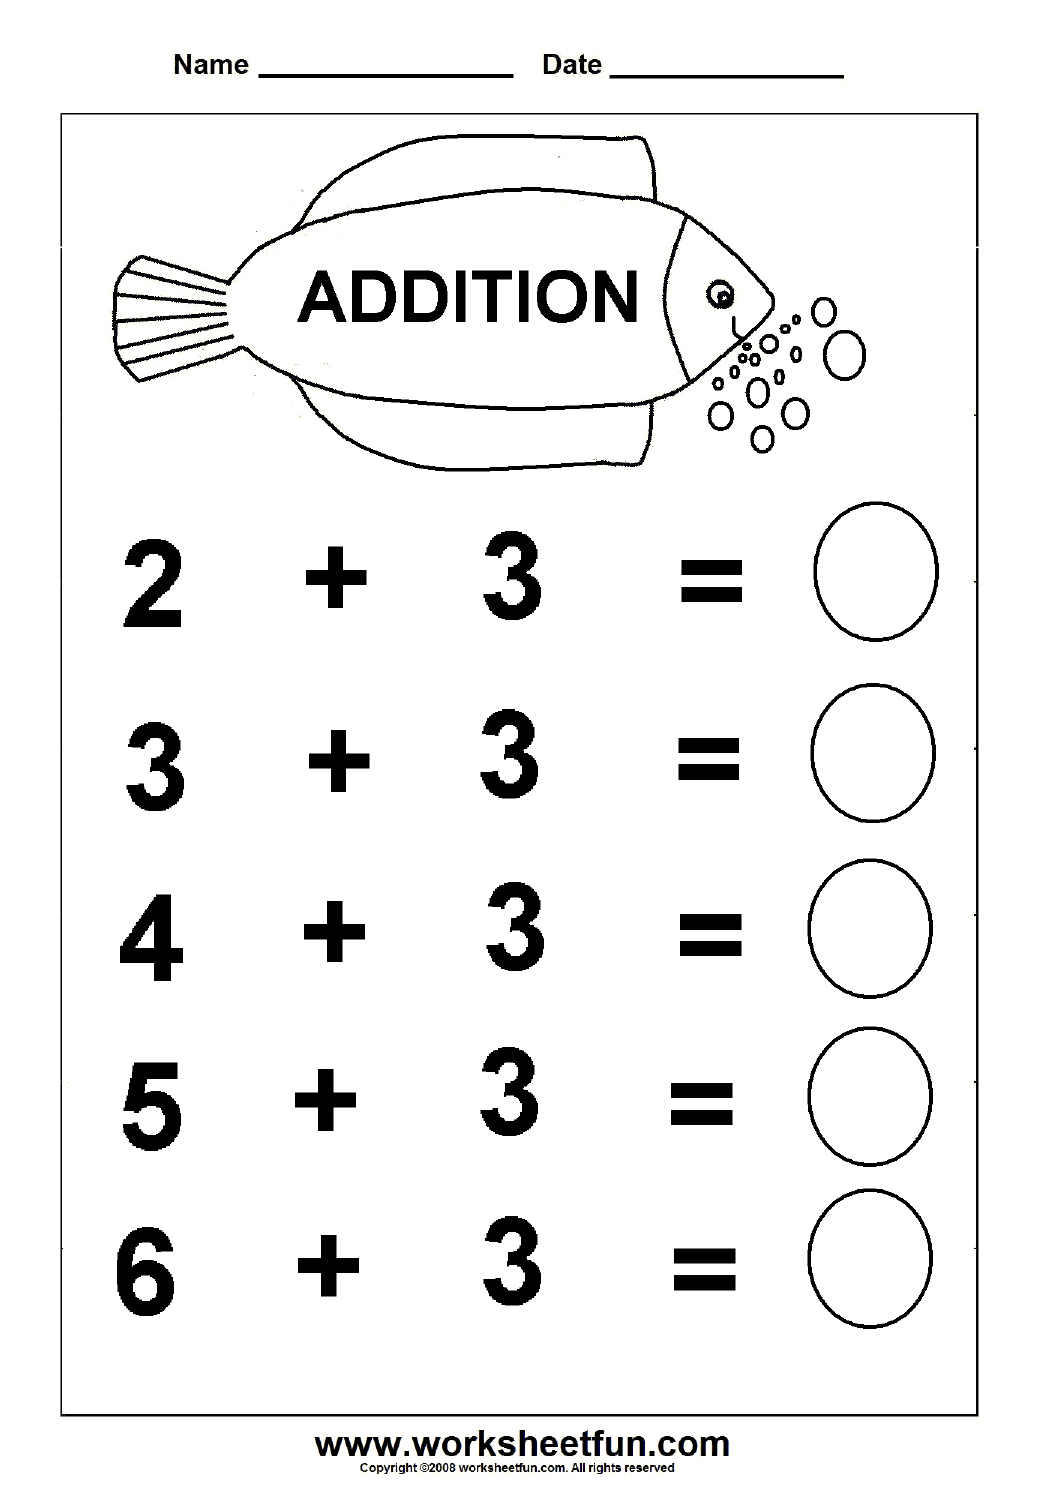 Superkids Math Worksheet Addition aprita – Superkids Math Worksheet Addition